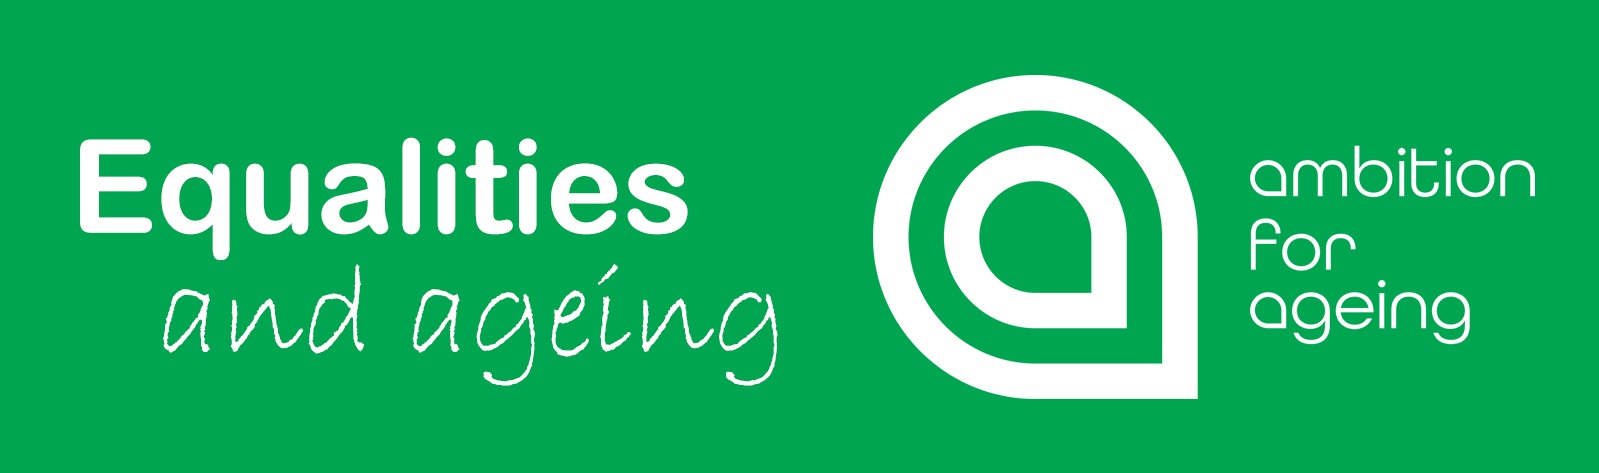 Green box with white text on green background saying Equalities and ageing and the Ambition for Ageing logo in white